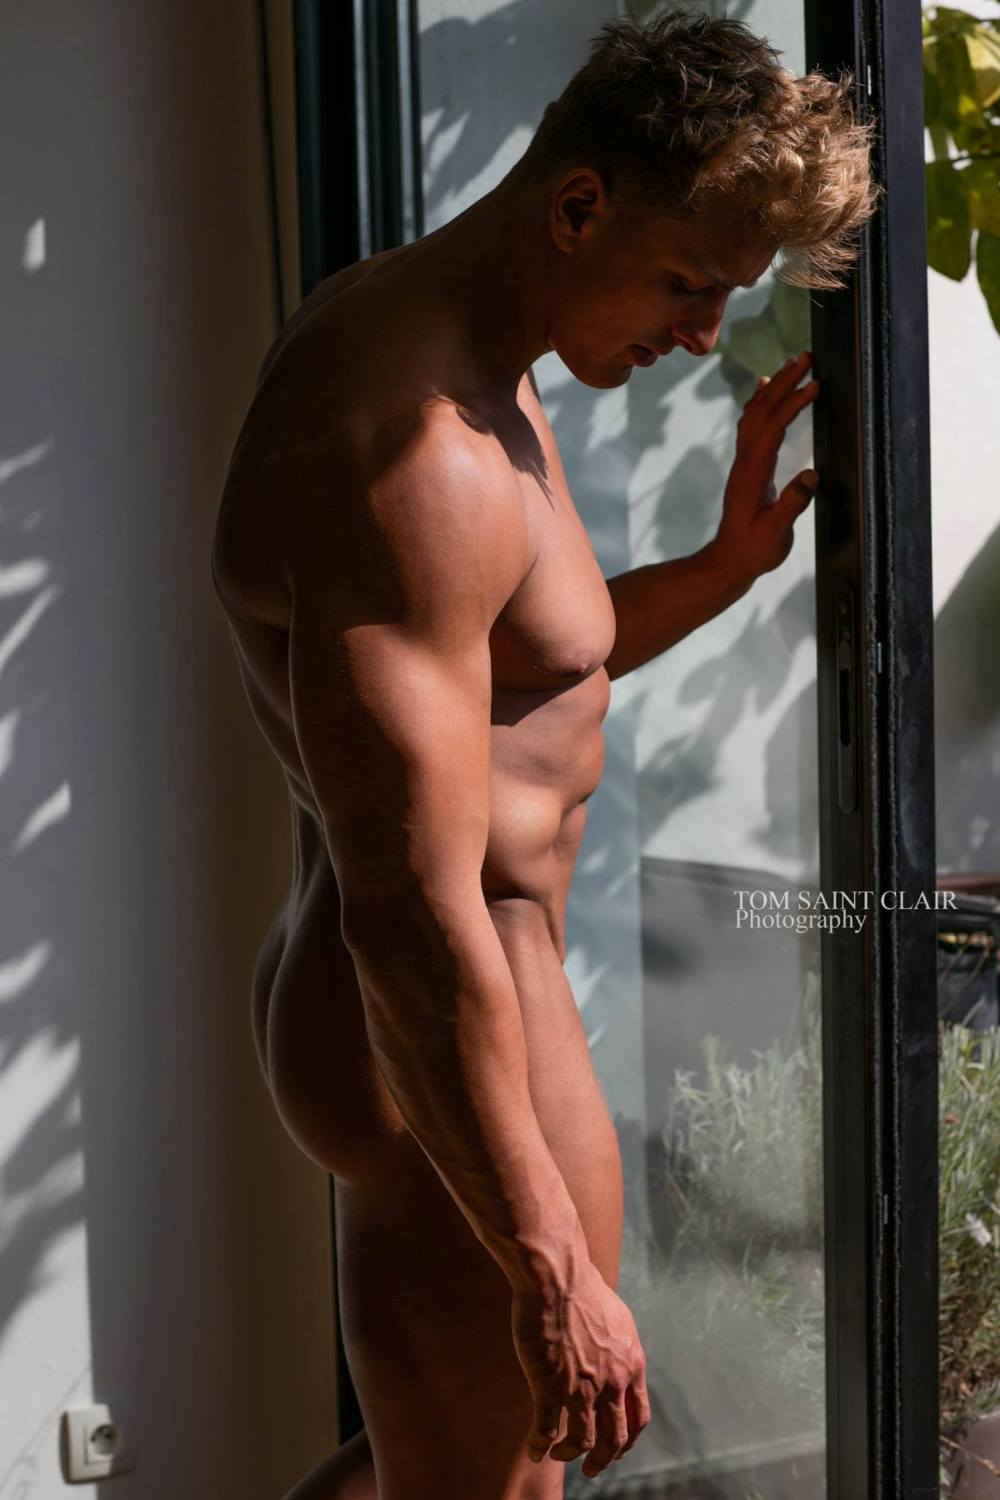 Matthew Vose by Tom Saint Clair 2